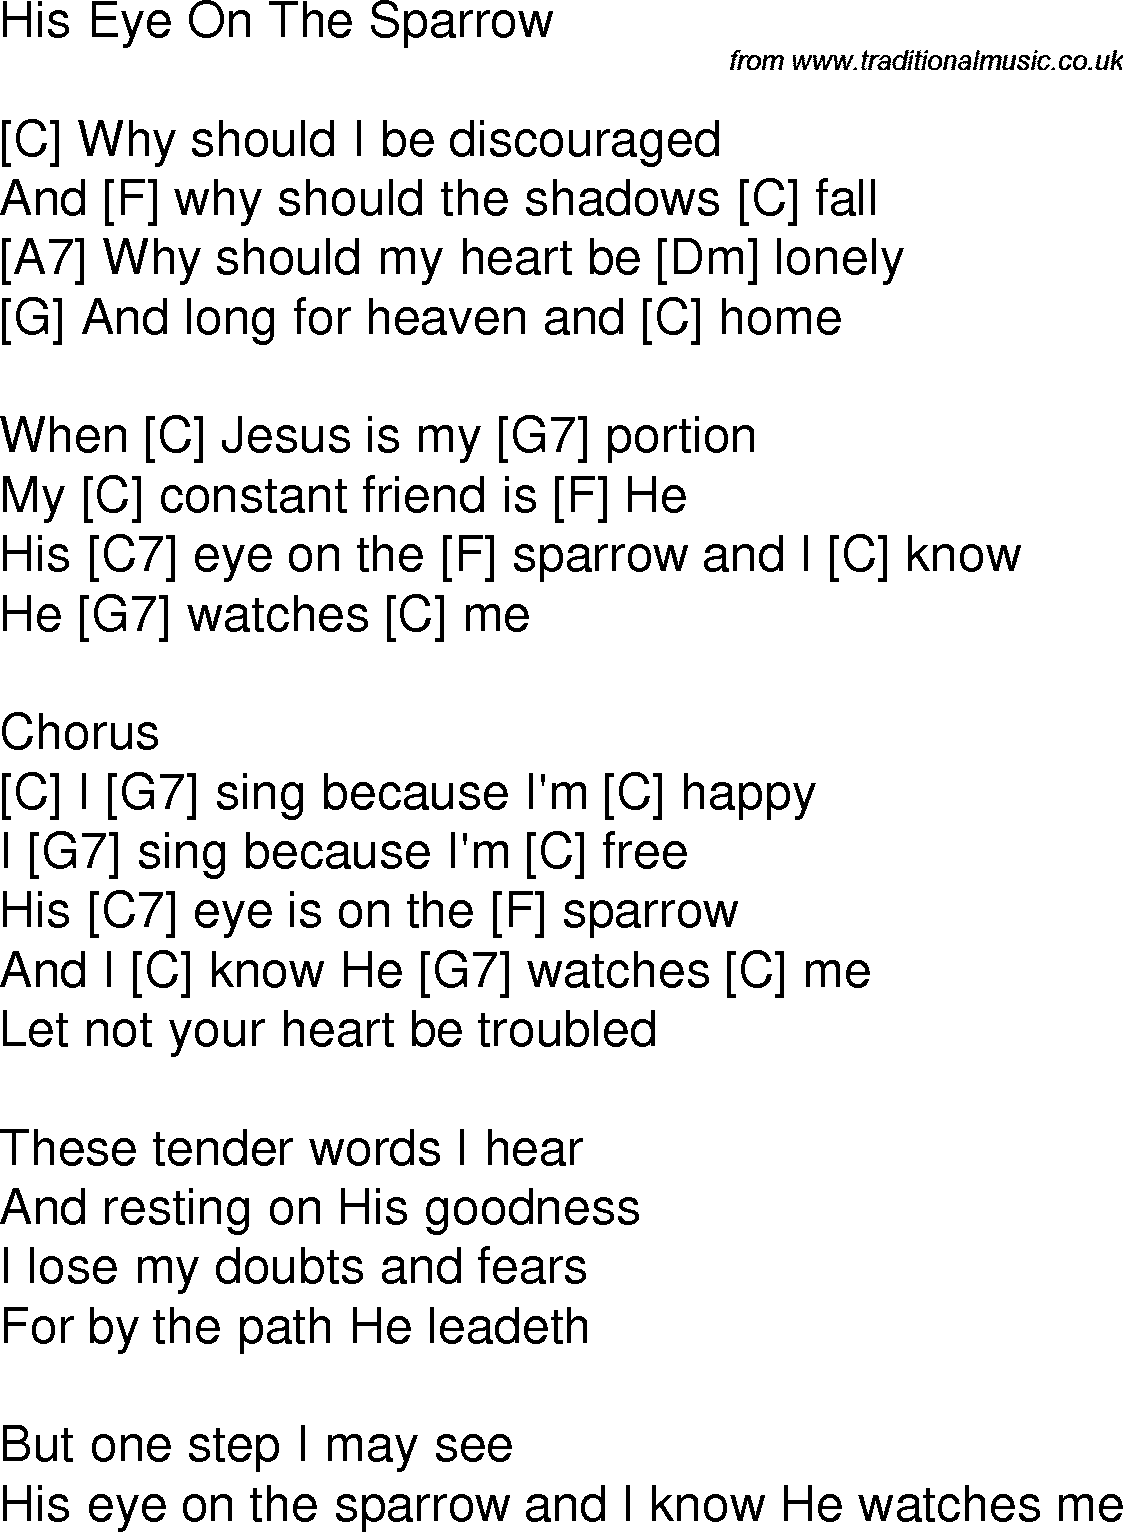 Old Time Song Lyrics With Chords For His Eye Is On The Sparrow C